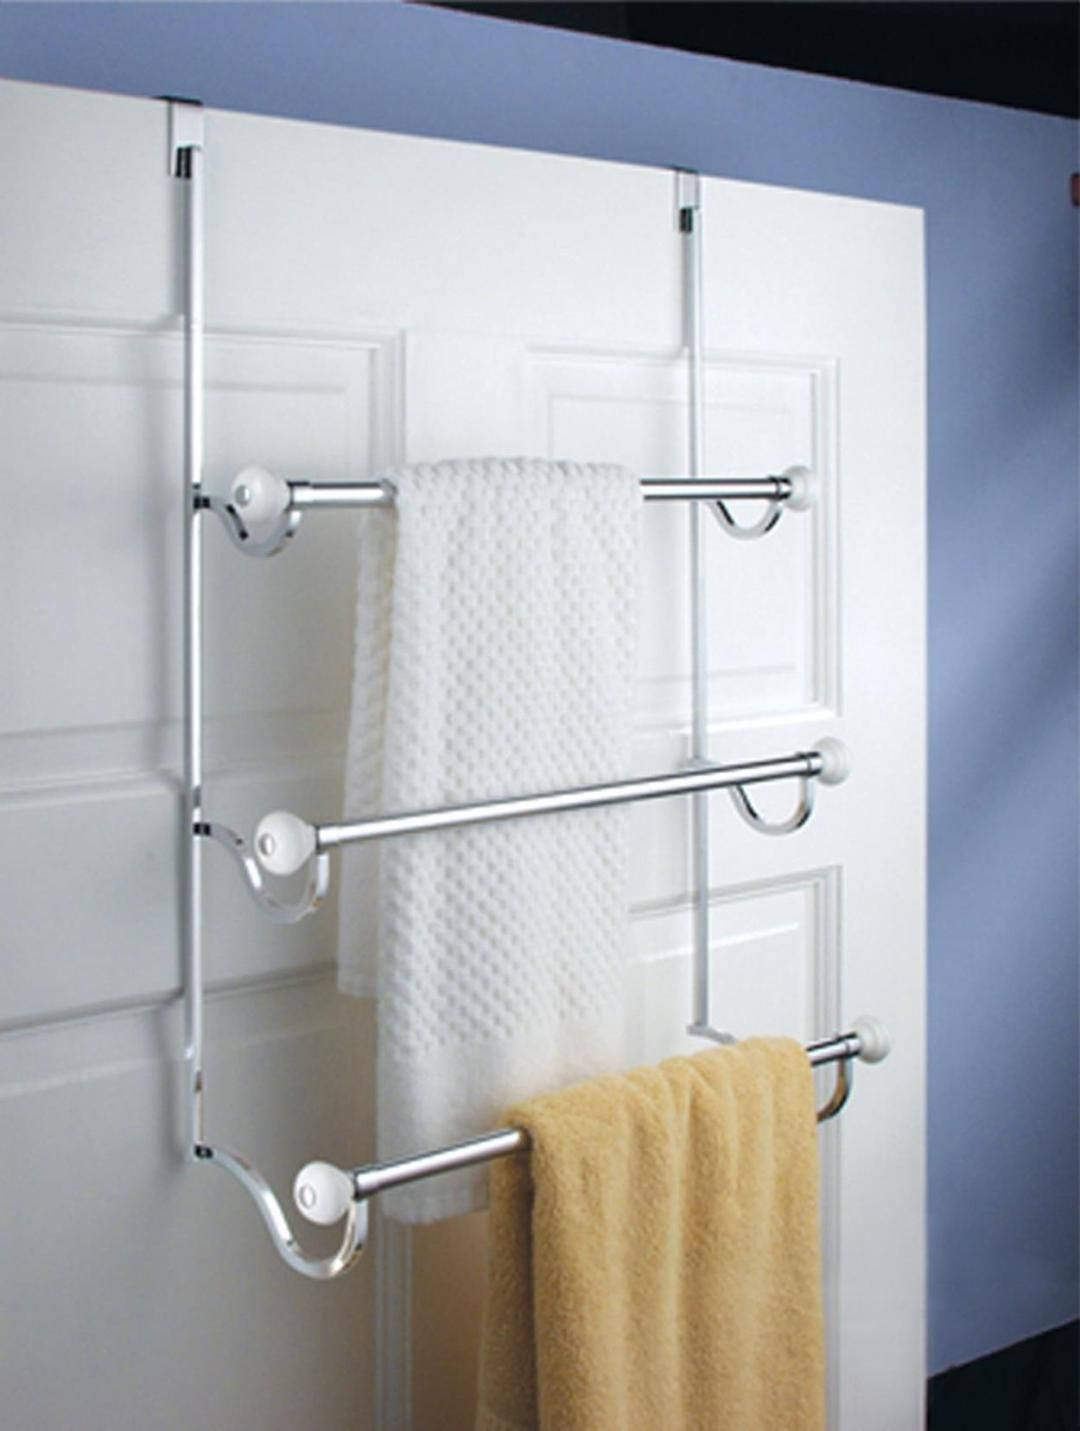 27 Simple But Beautiful Bathroom Towel Hanger Ideas